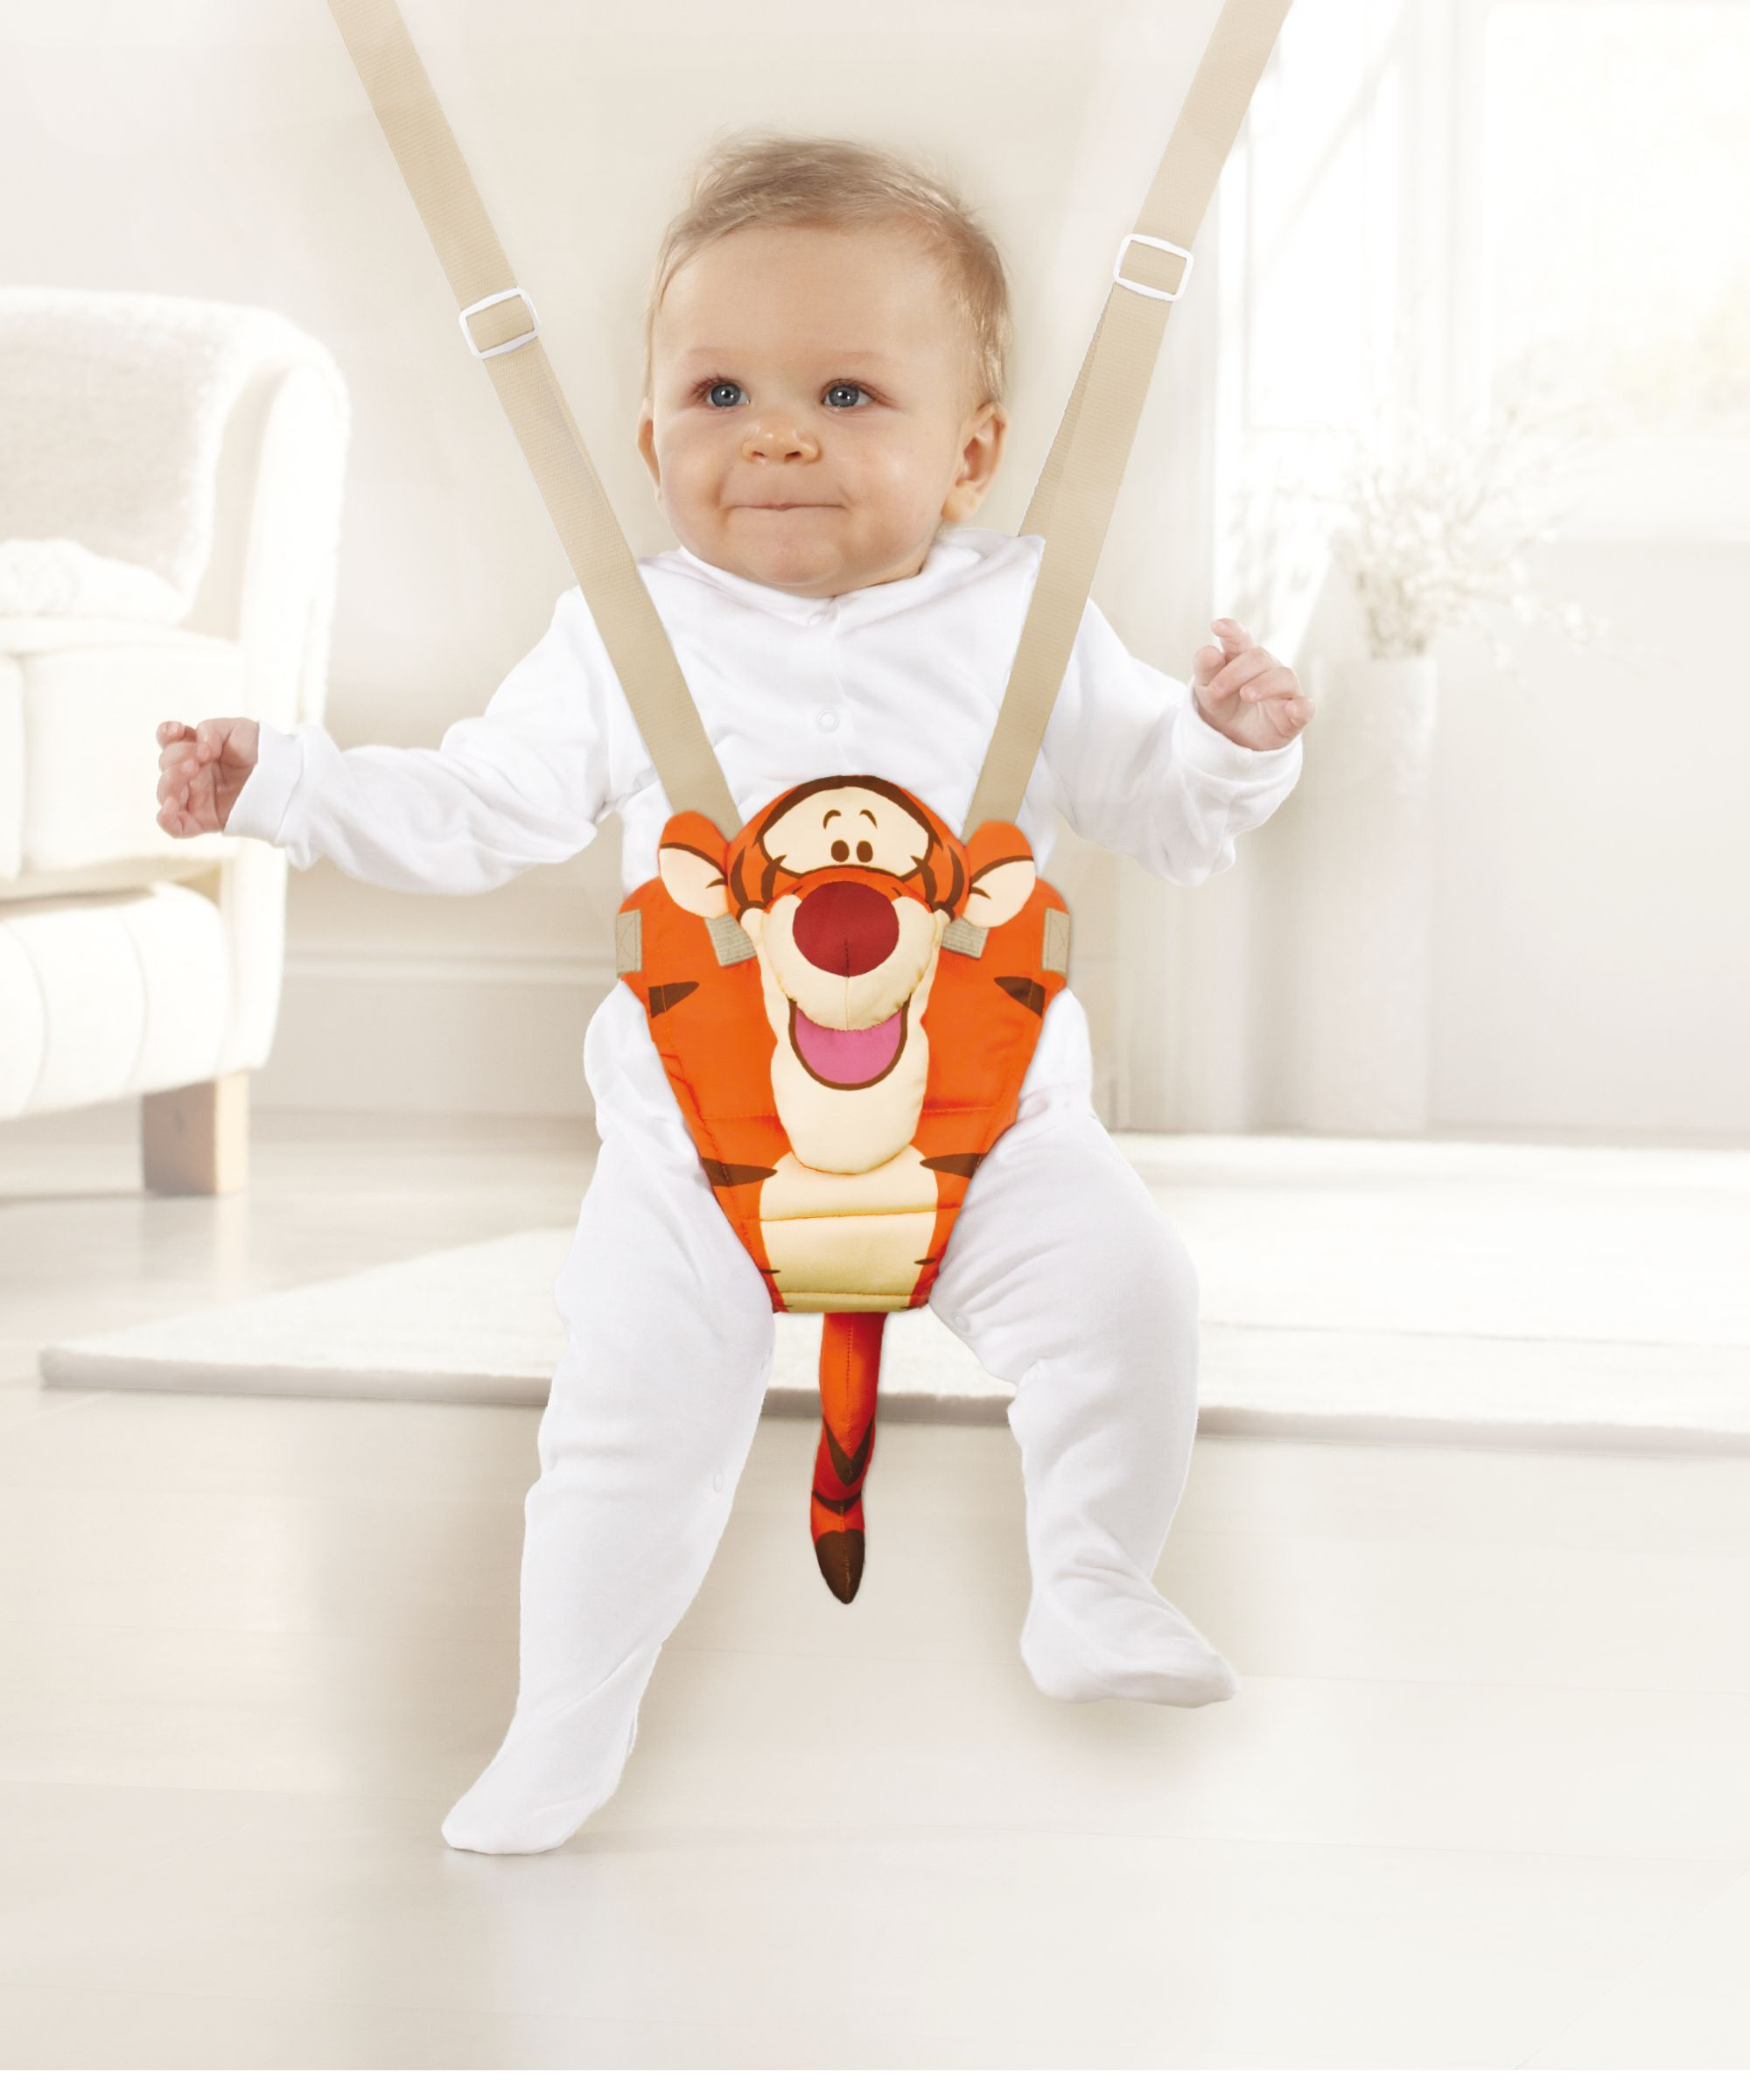 Munchkin Disney Tigger Door Bouncer Baby ideas